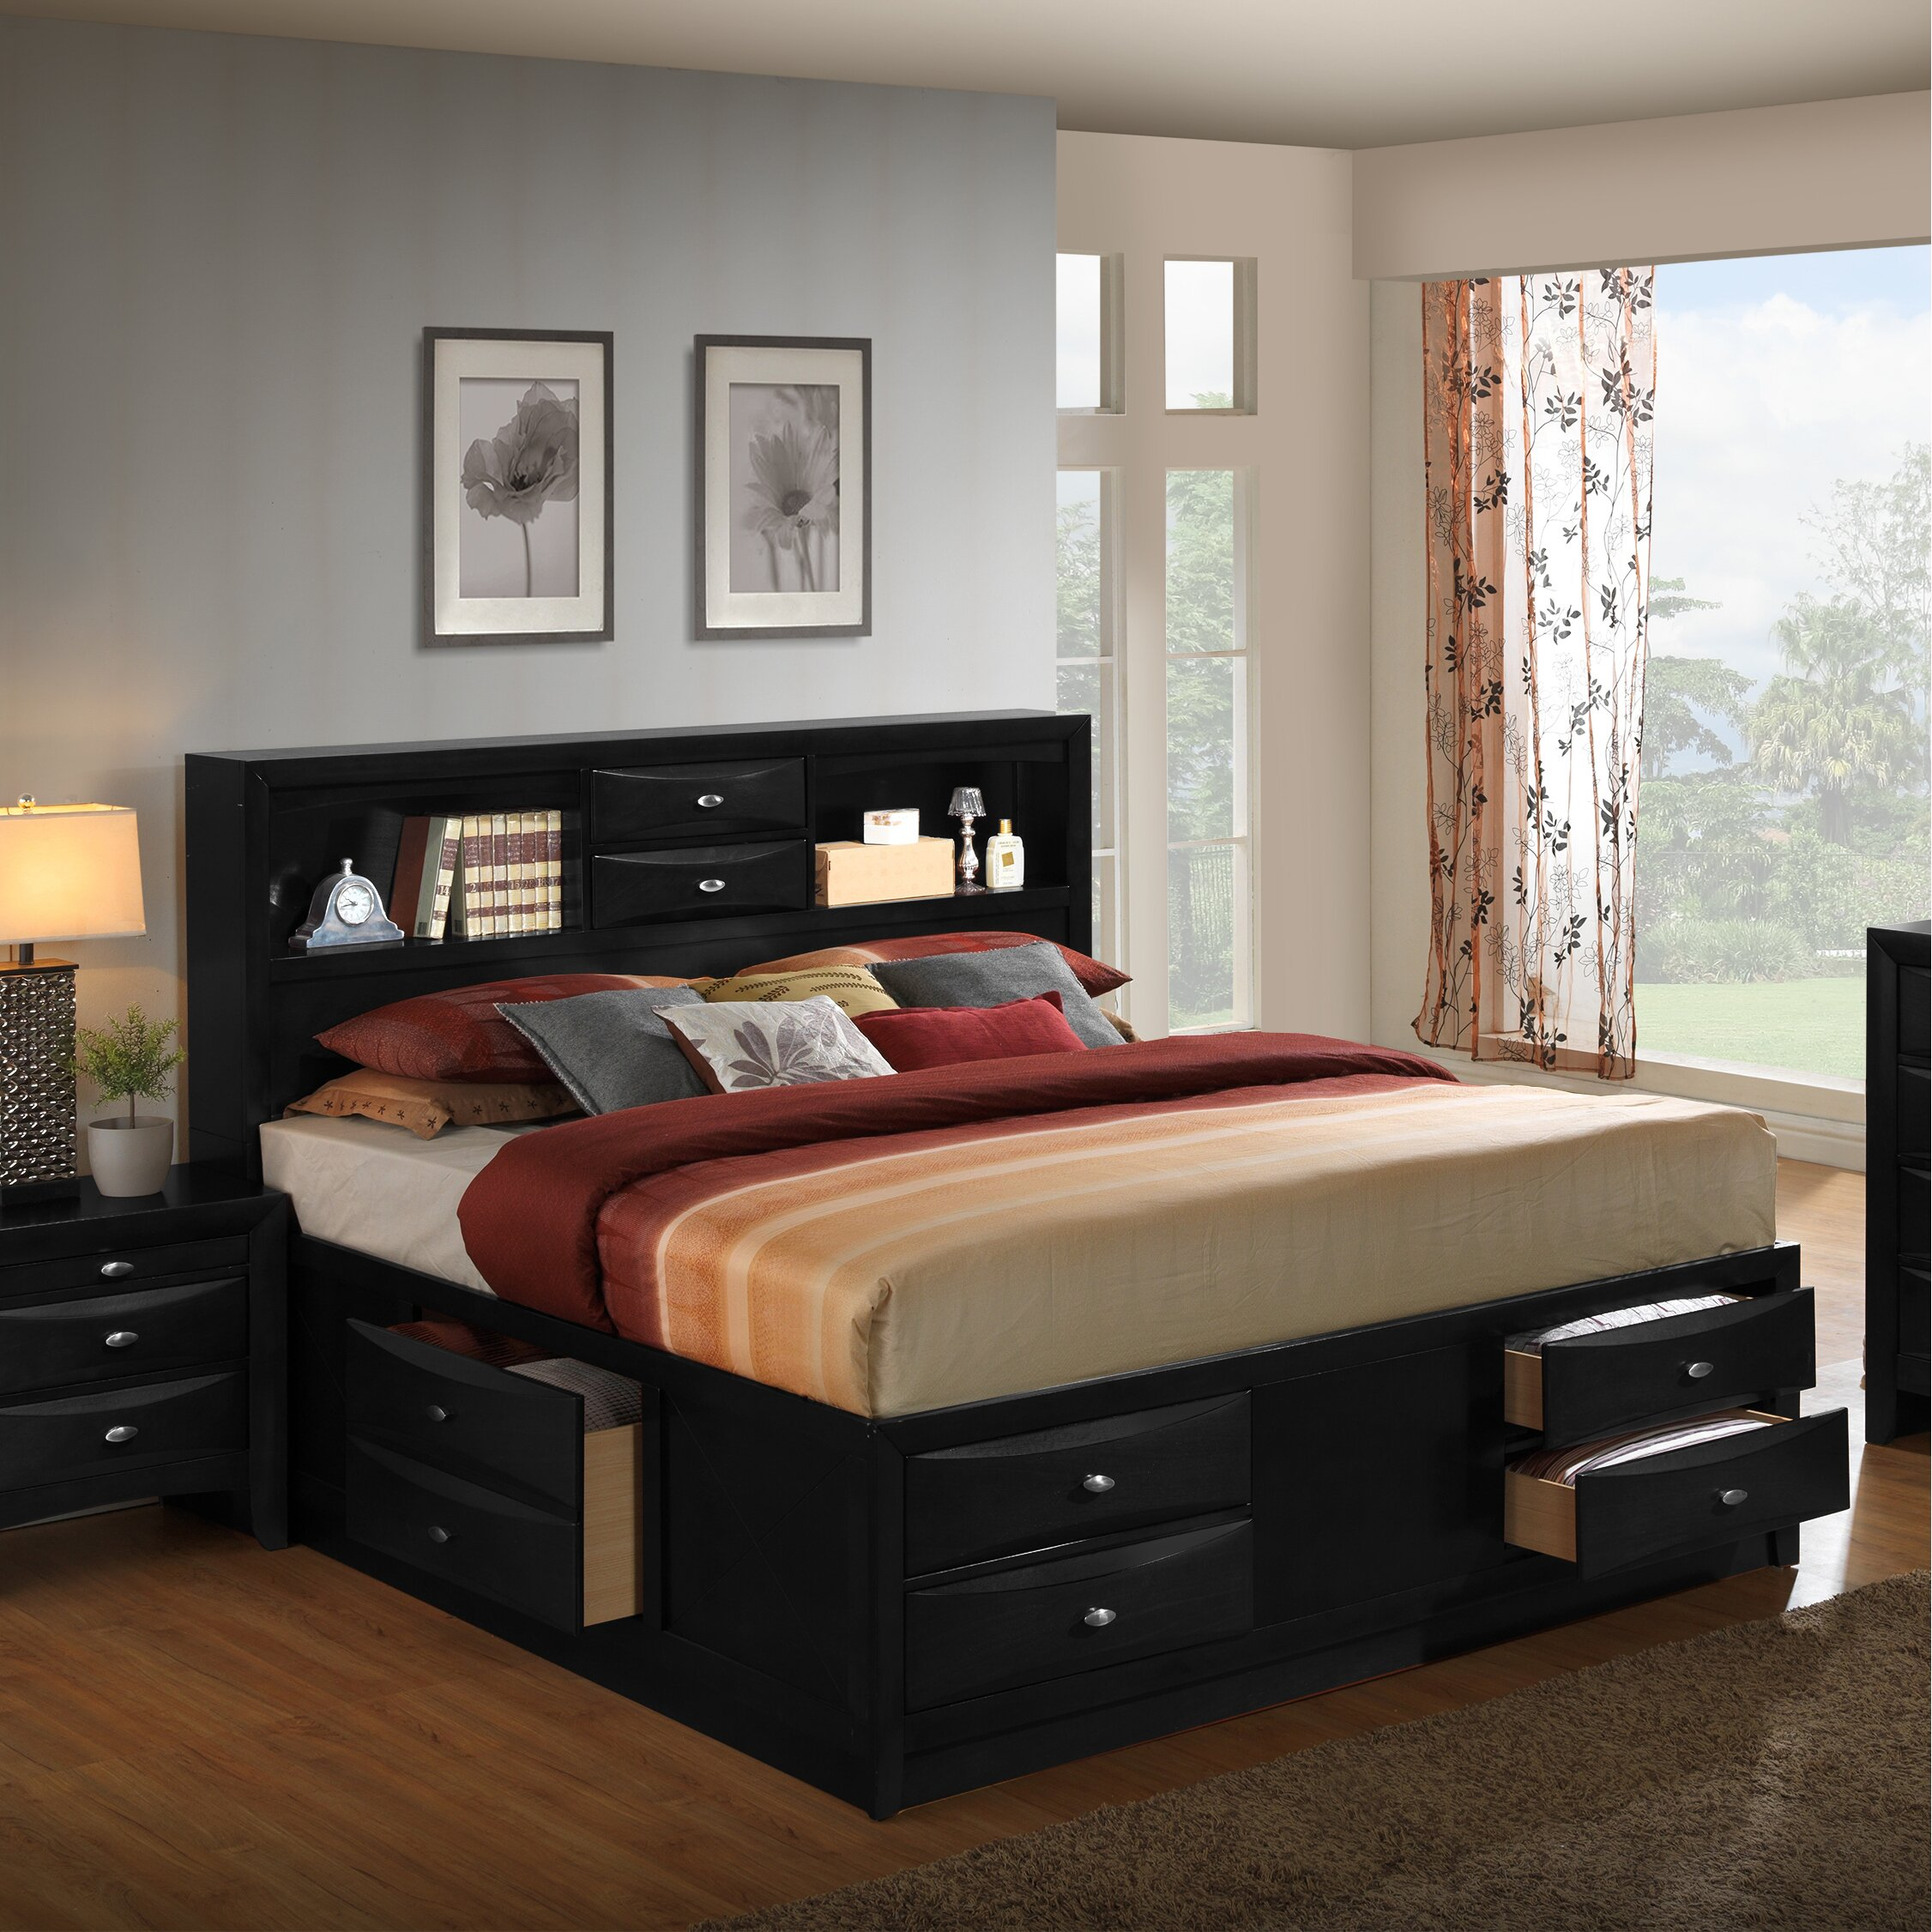 Roundhill Furniture Blemerey Platform 6 Piece Bedroom Set